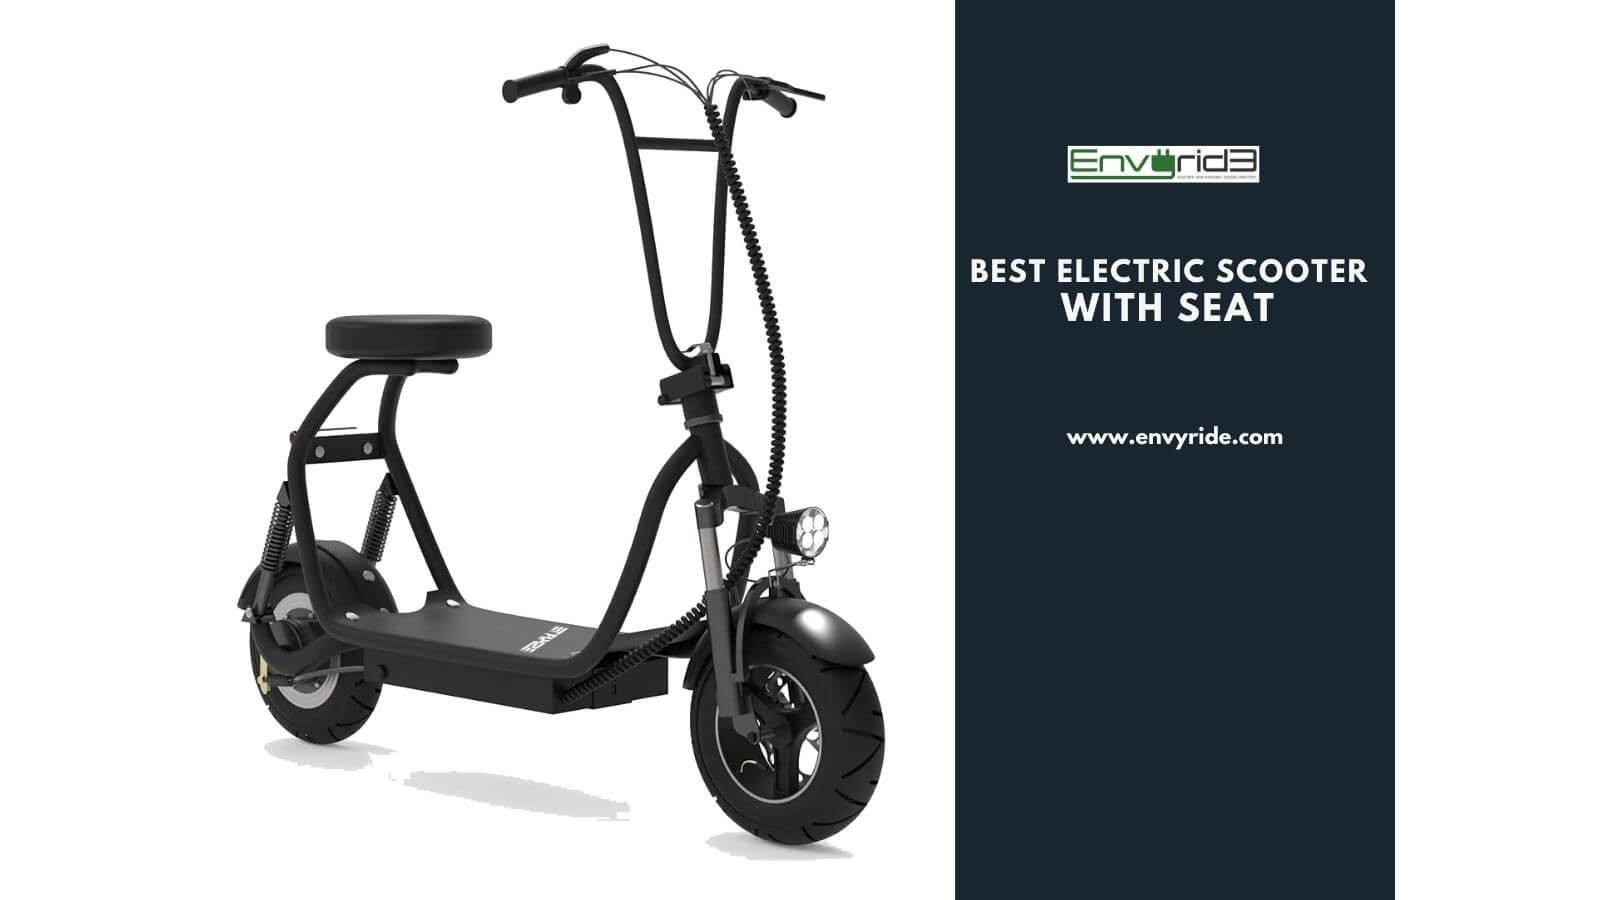 The best electric scooter with seat